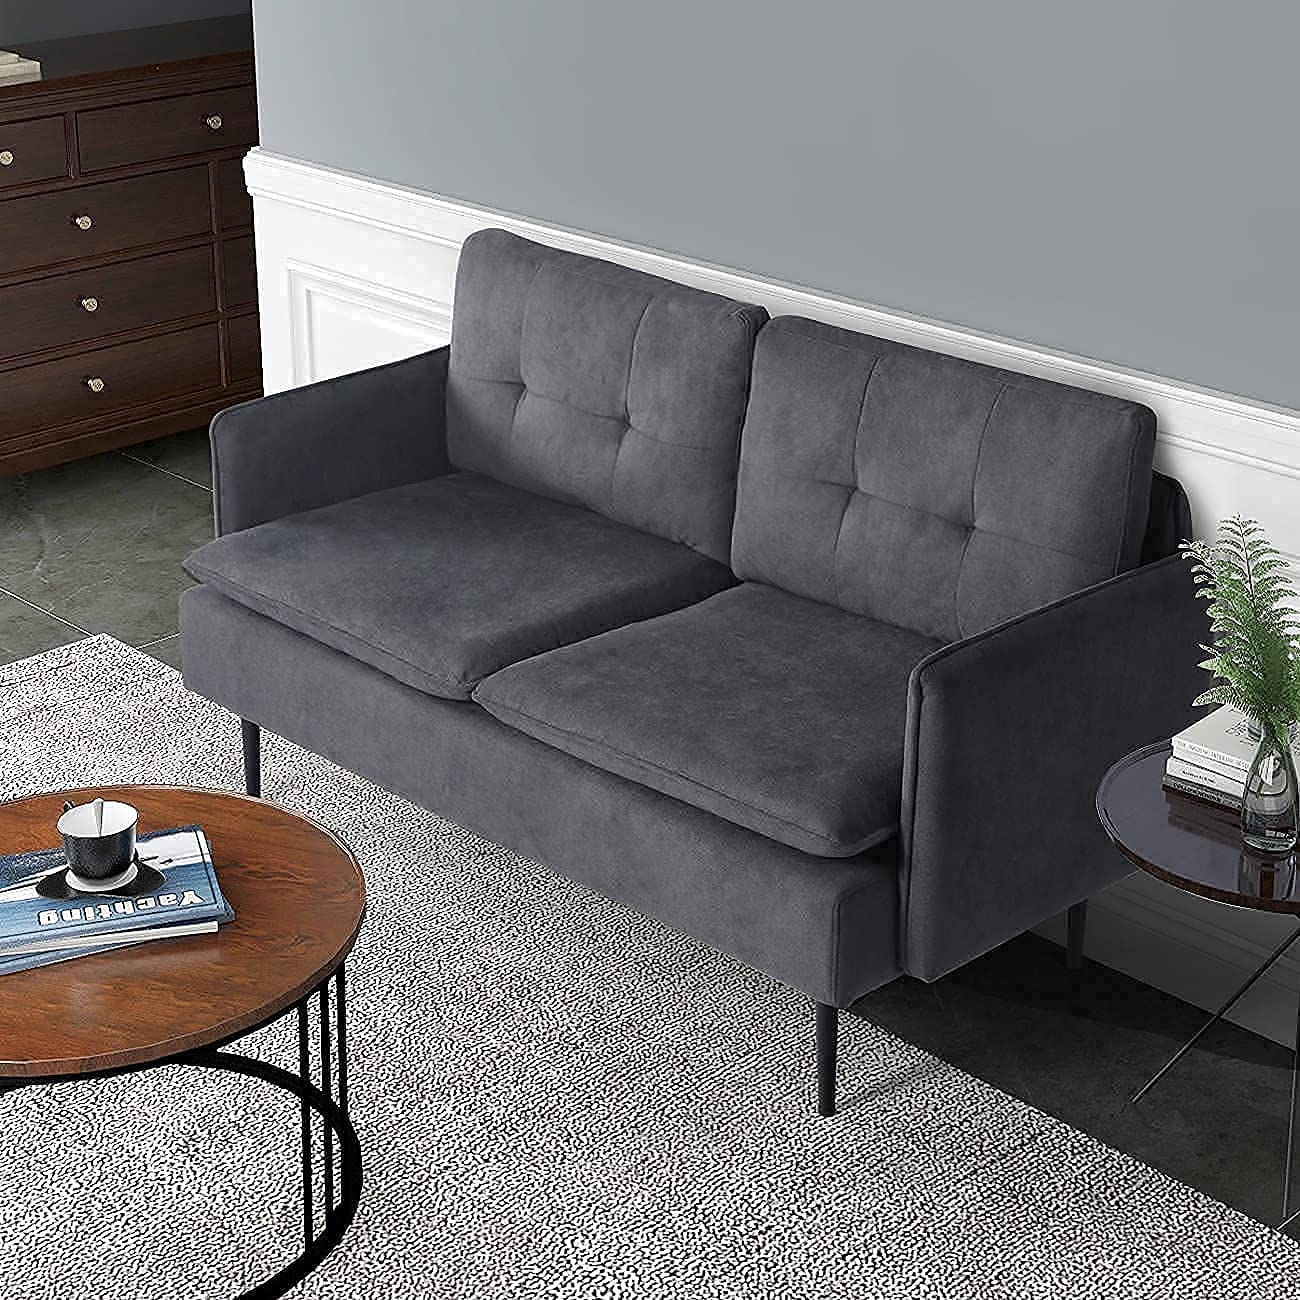 AODAILIHB Upholstered Loveseat Sofa with Metal Legs for Small Space Tufted Cushions Soft Sectional 2-Seat Couch for Living Room, Office, Apartment (Grey, A)